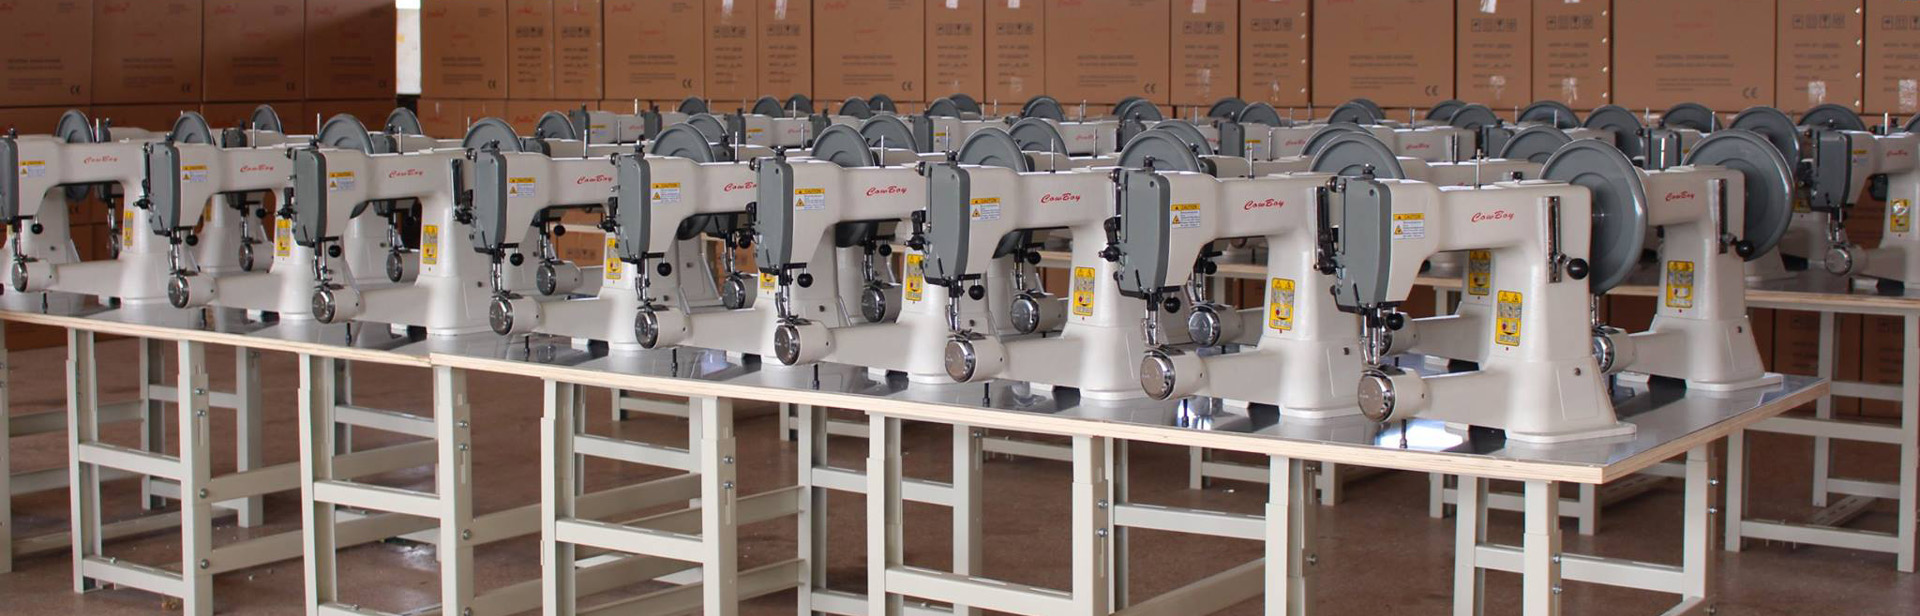 Top Rated Sewing Machines 2020.Hightex The Best Heavy Duty Industrial Sewing Machine Made In China